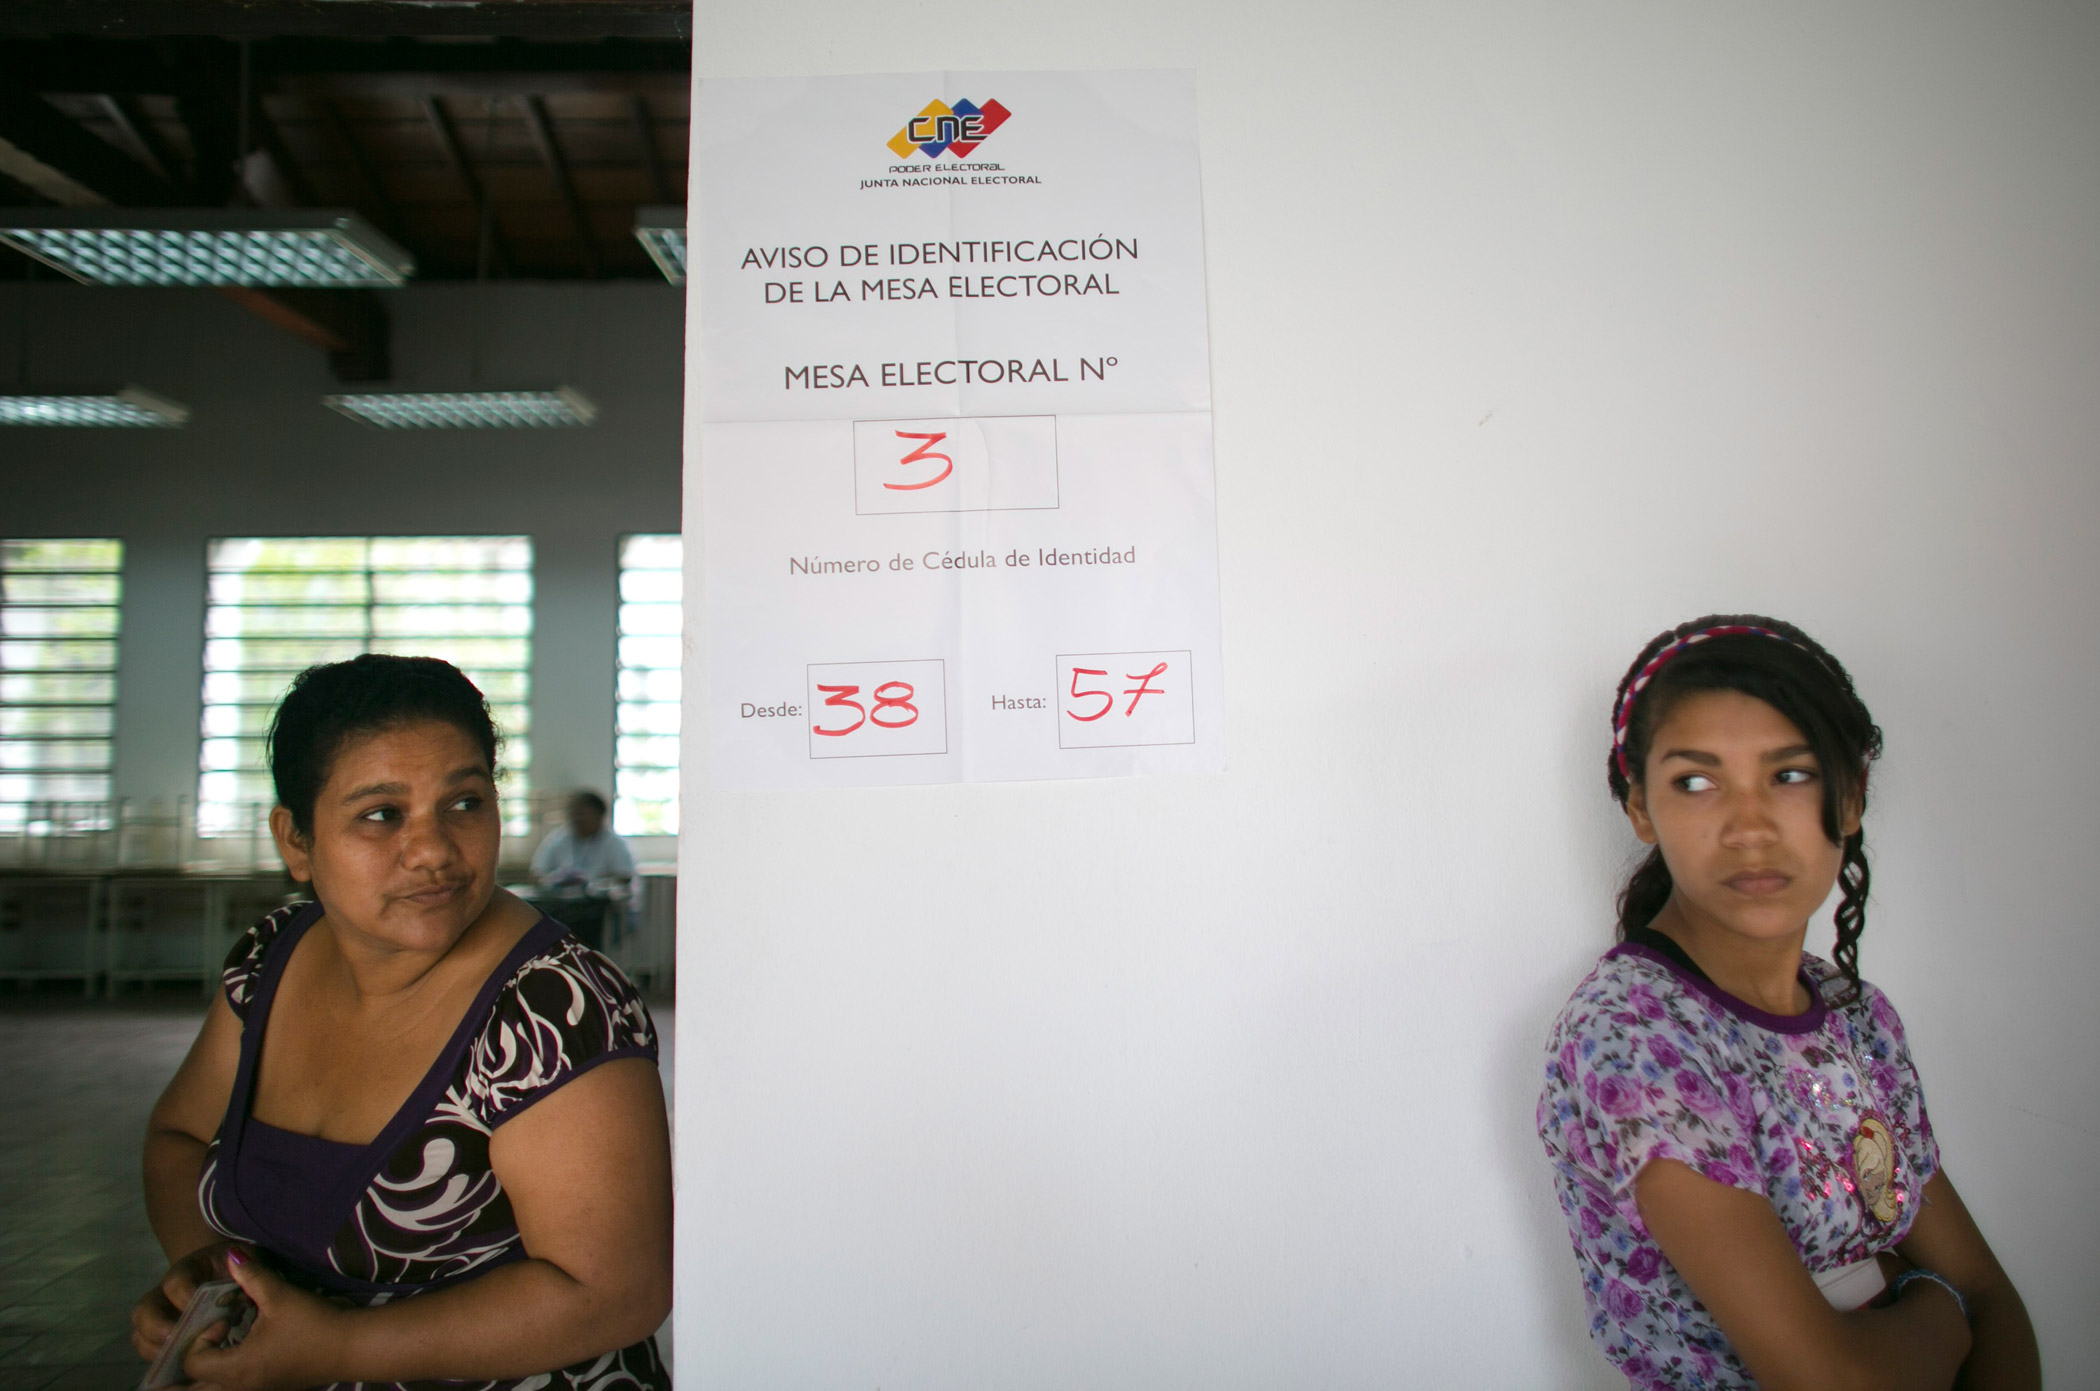 Voters wait to vote at a poll station during ruling party primary elections in Caracas, Venezuela, on June 28, 2015.